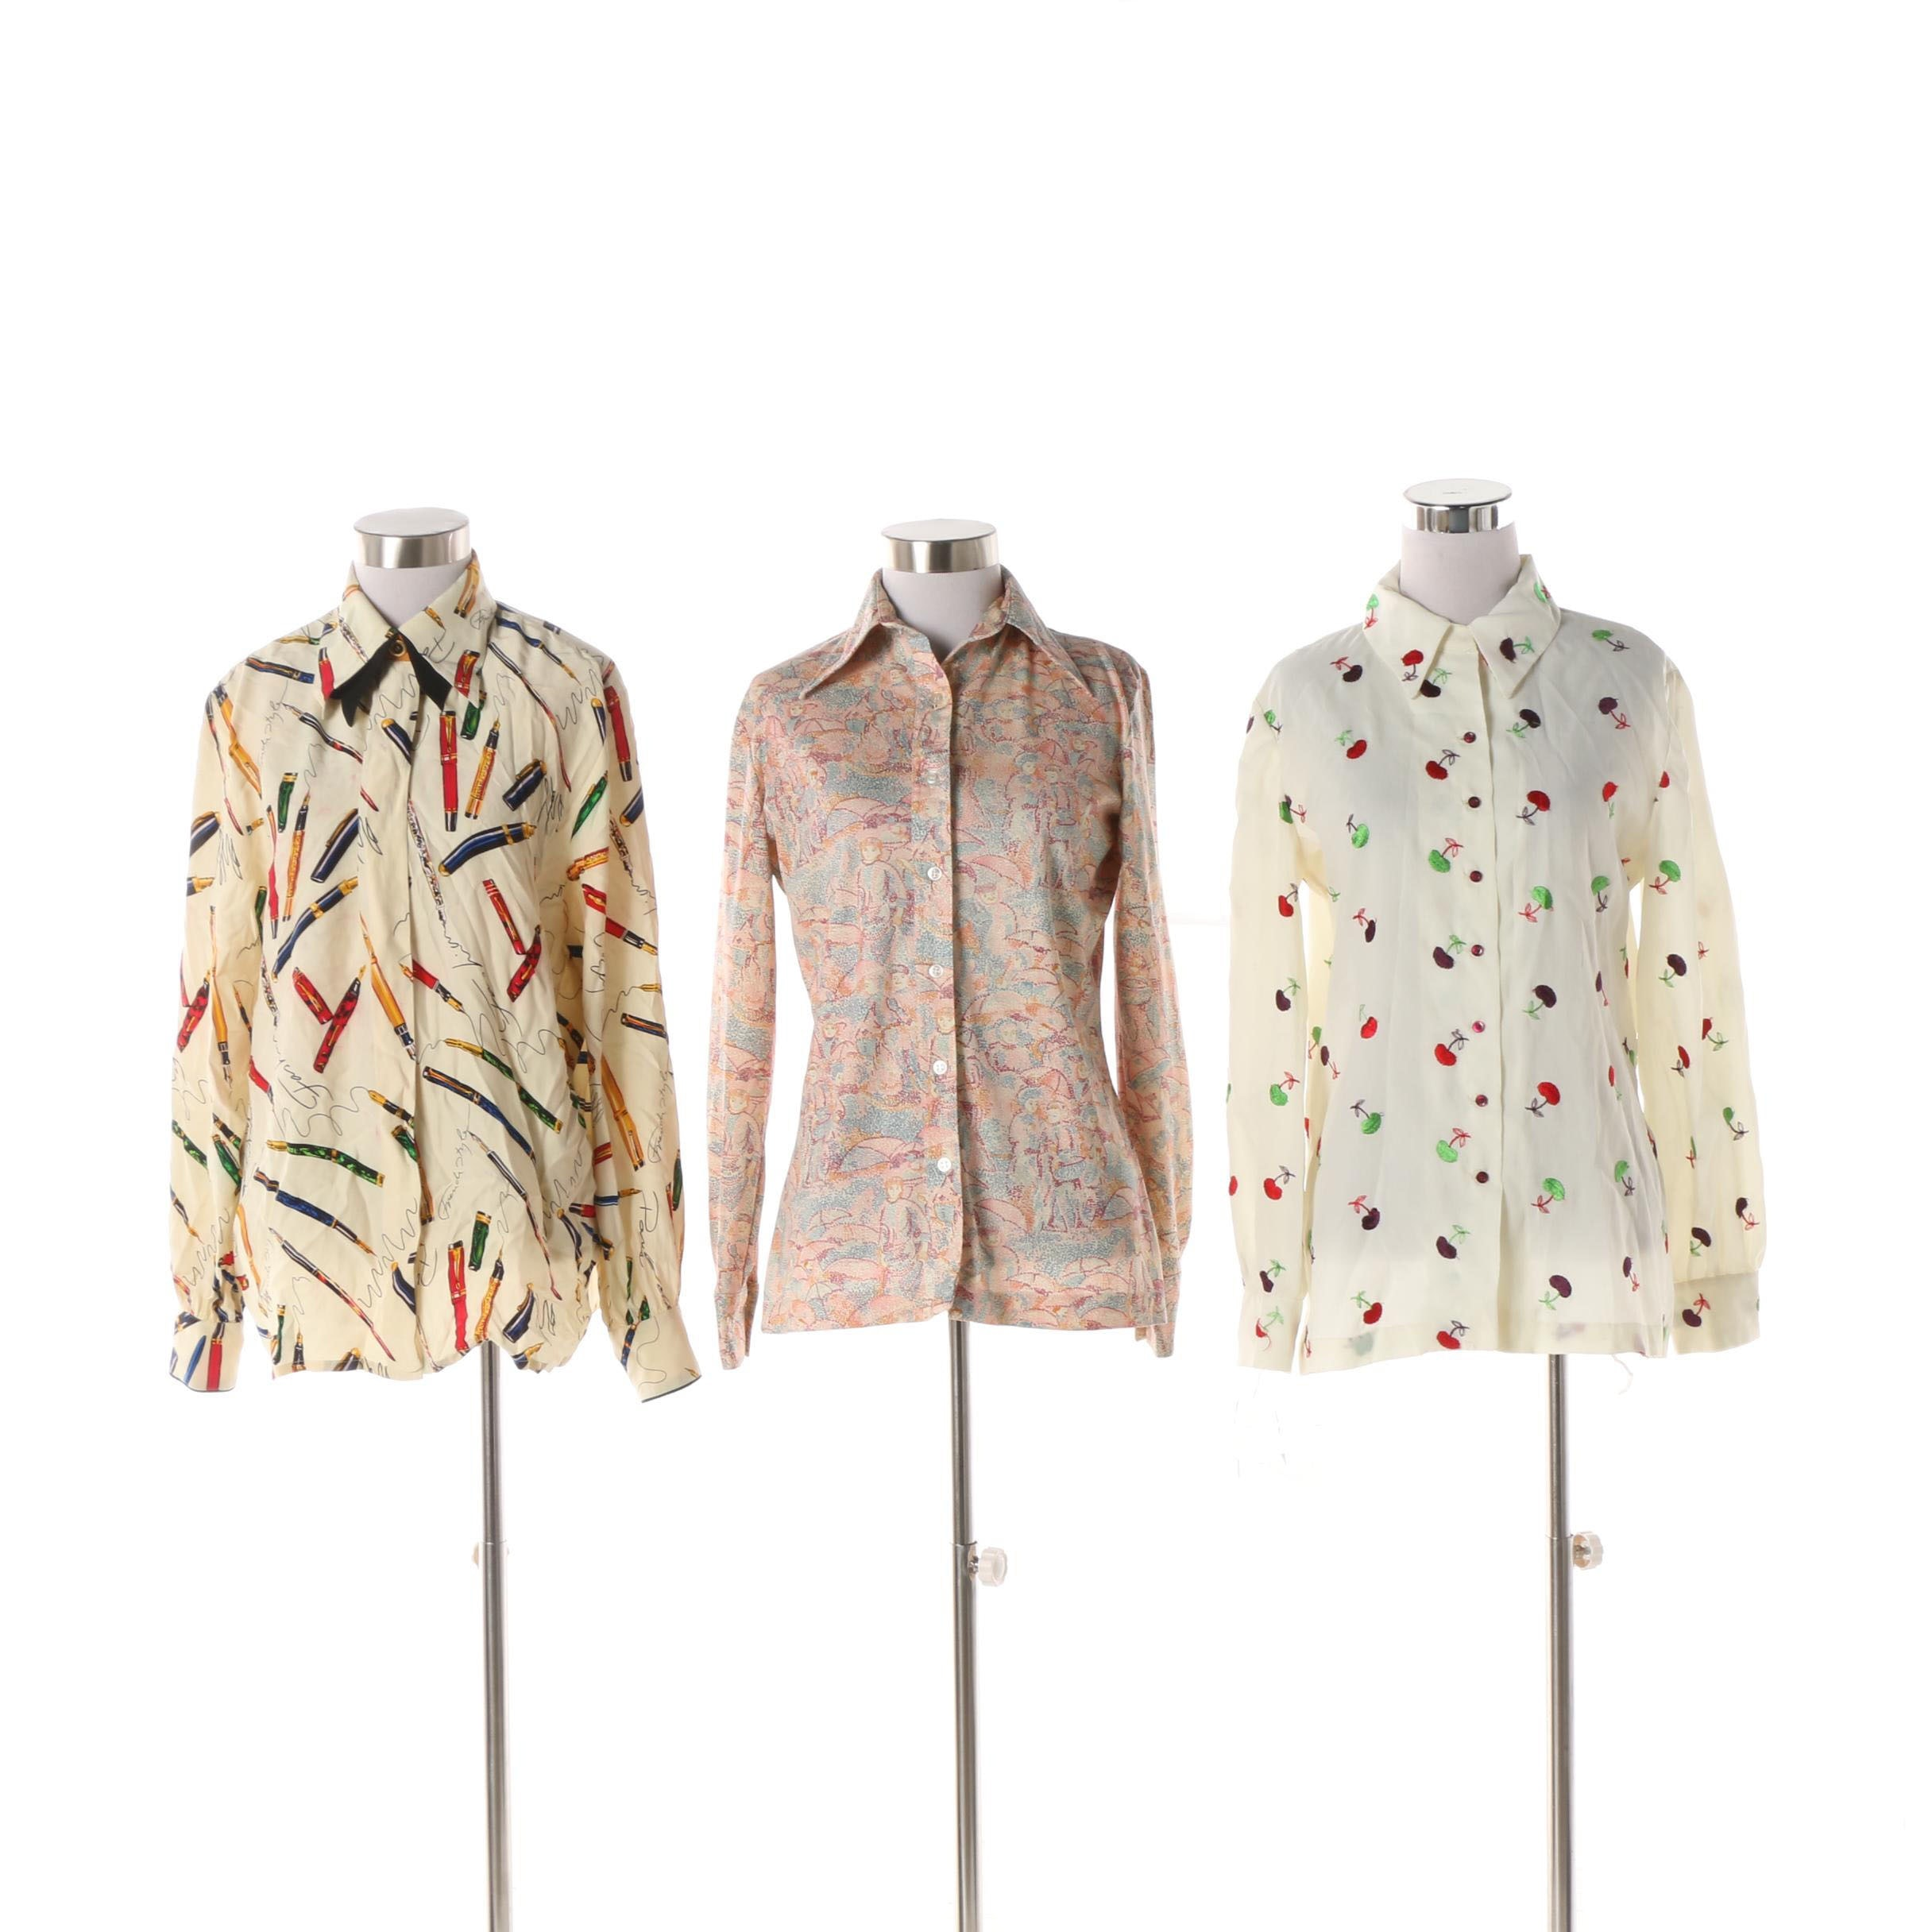 Circa 1970s and 1980s Patterned Blouses